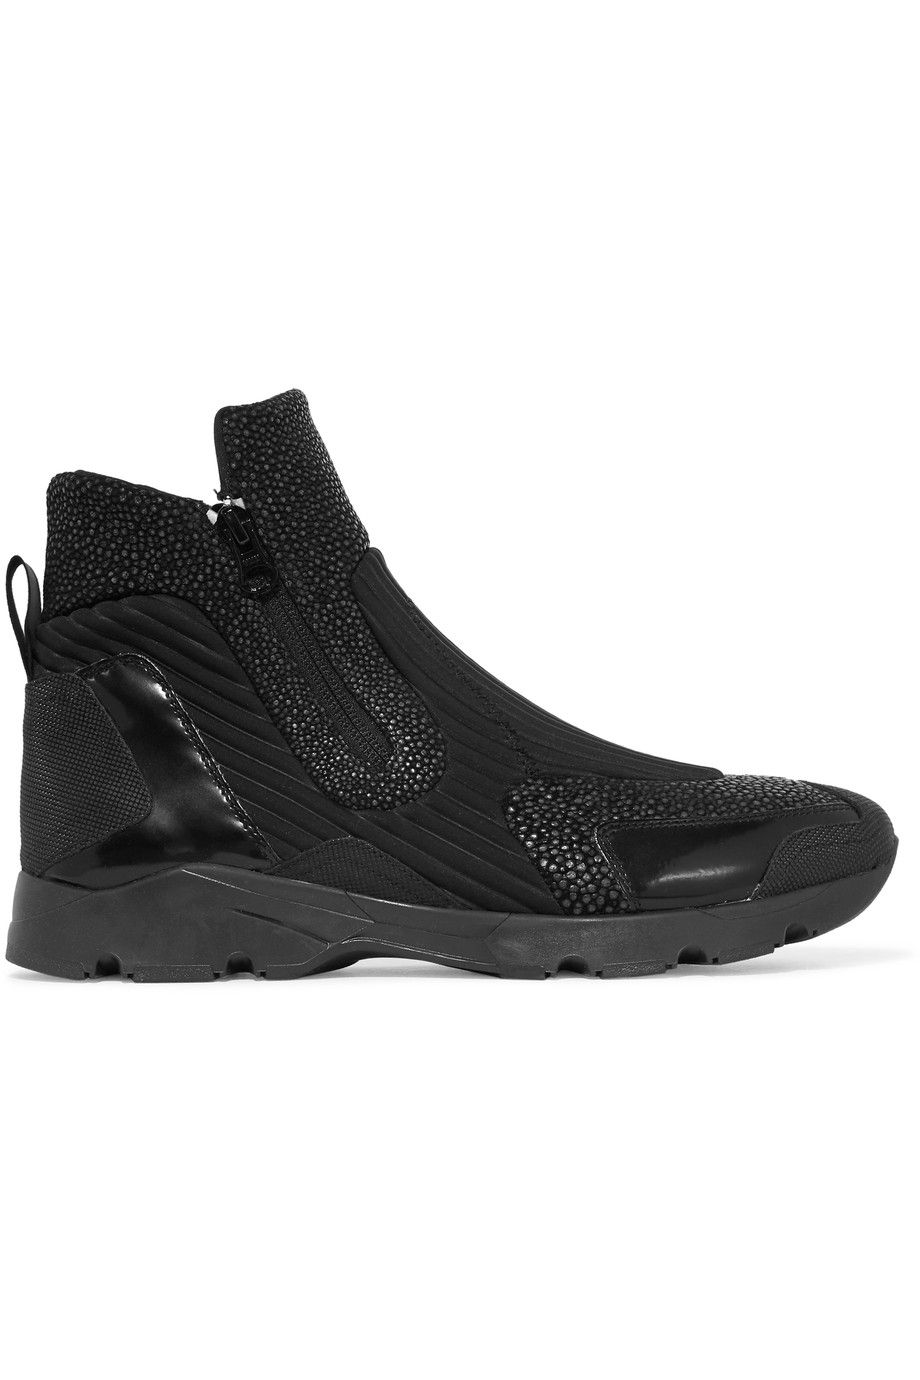 MM6 MAISON MARGIELA Textured-leather and neoprene high-top sneakers.  #mm6maisonmargiela #